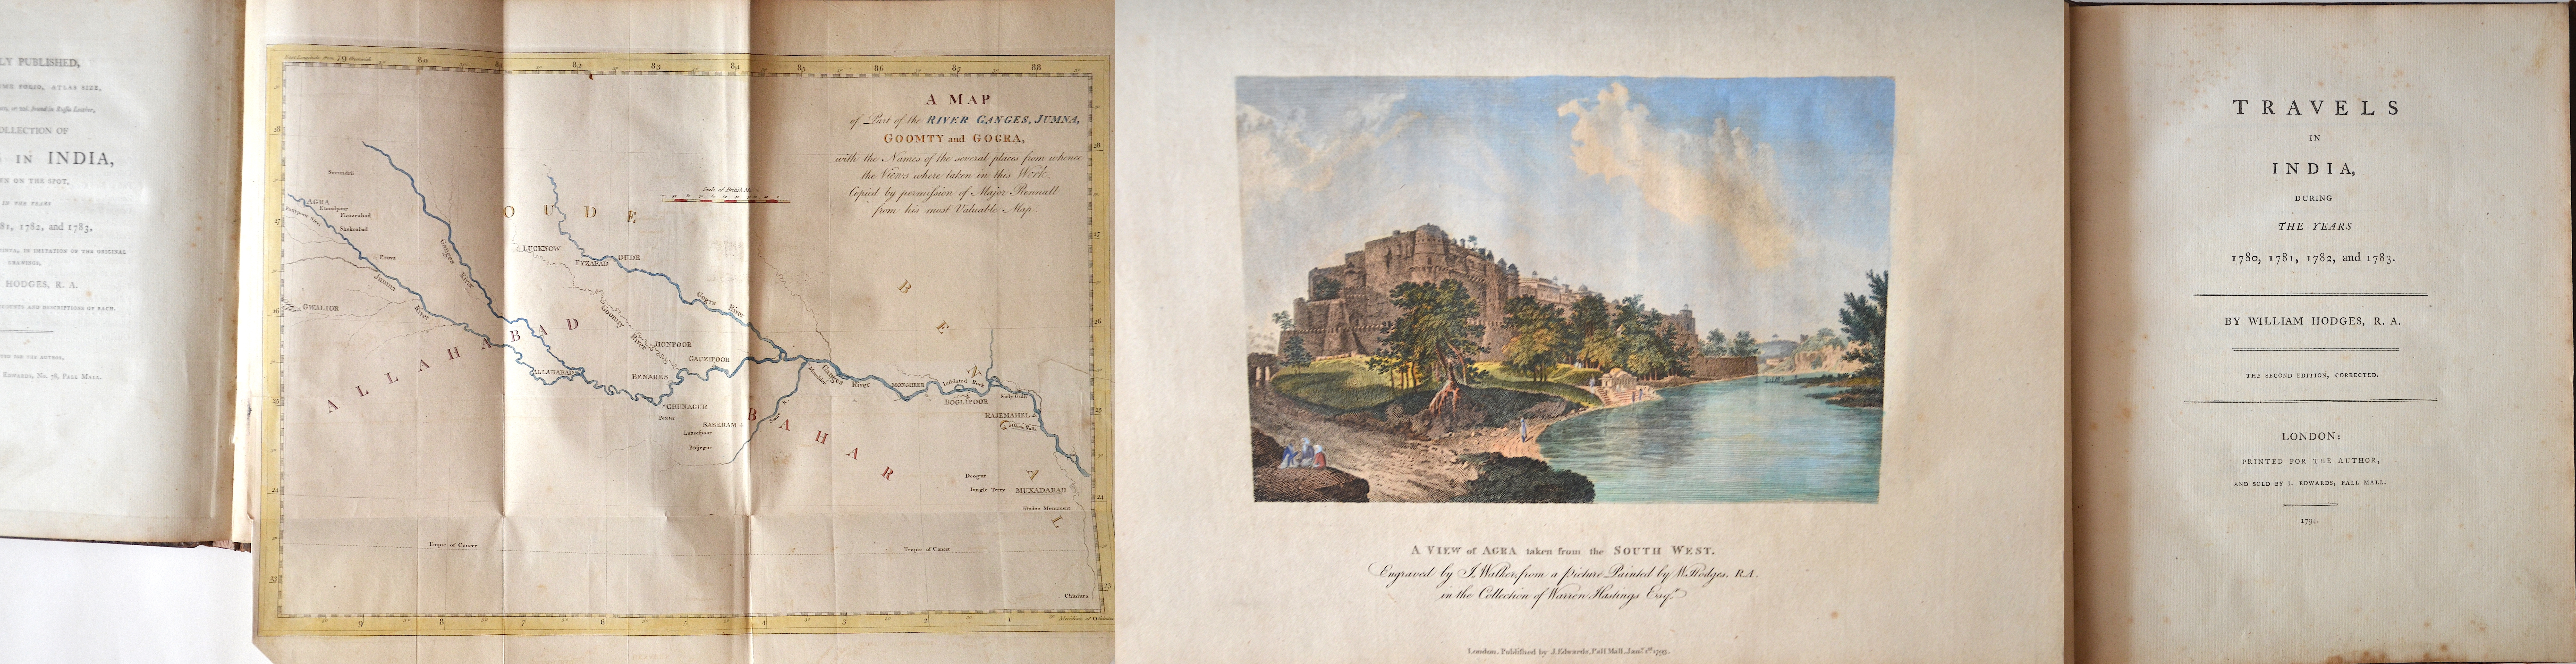 Edwards J. Travels in India, during the Years 1780, 1781,1782, and 1783.